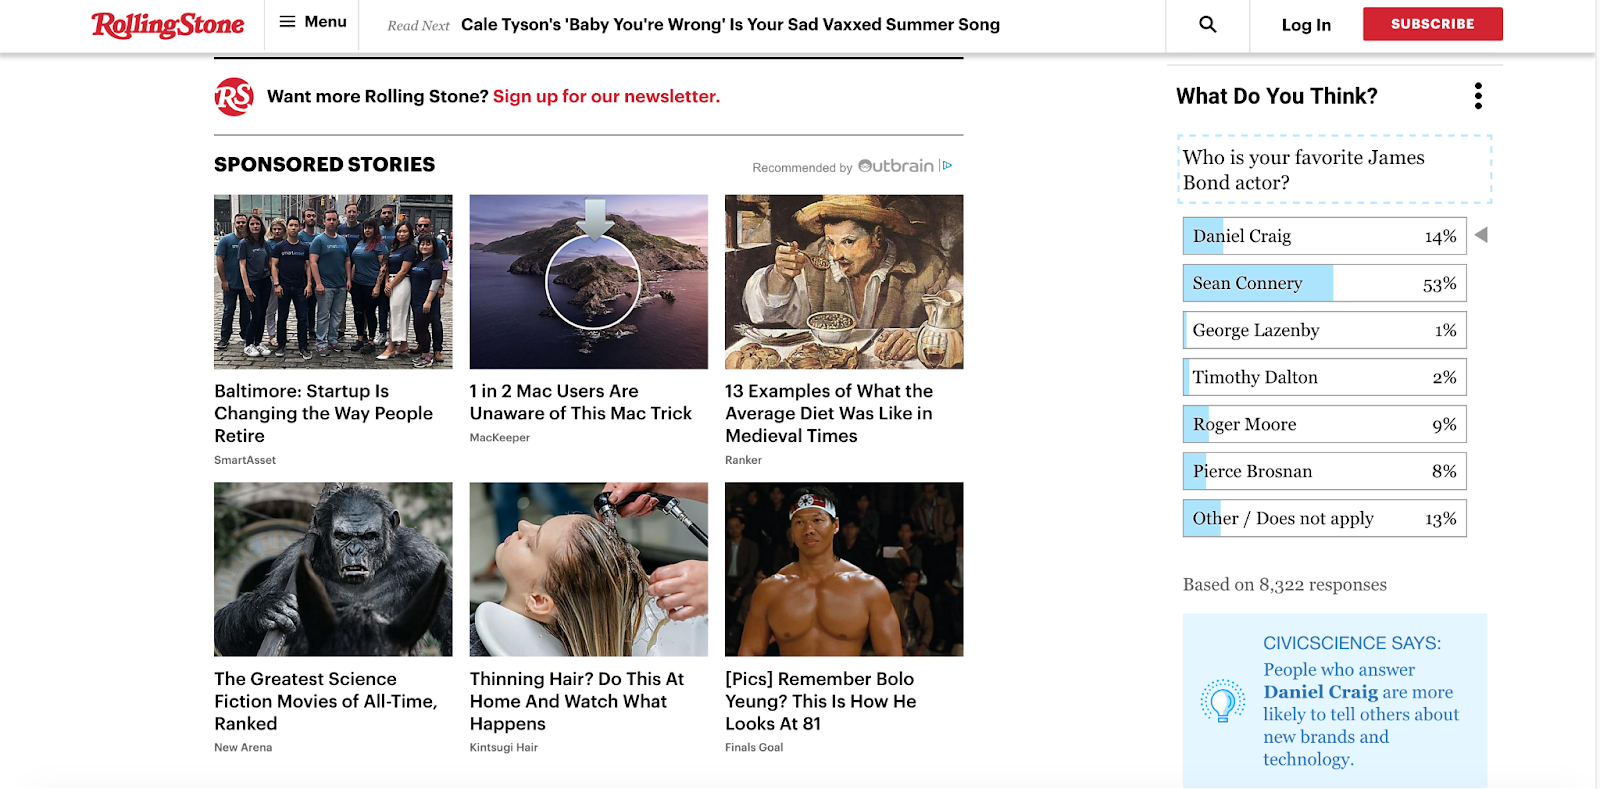 Rolling Stone Sponsored Stories